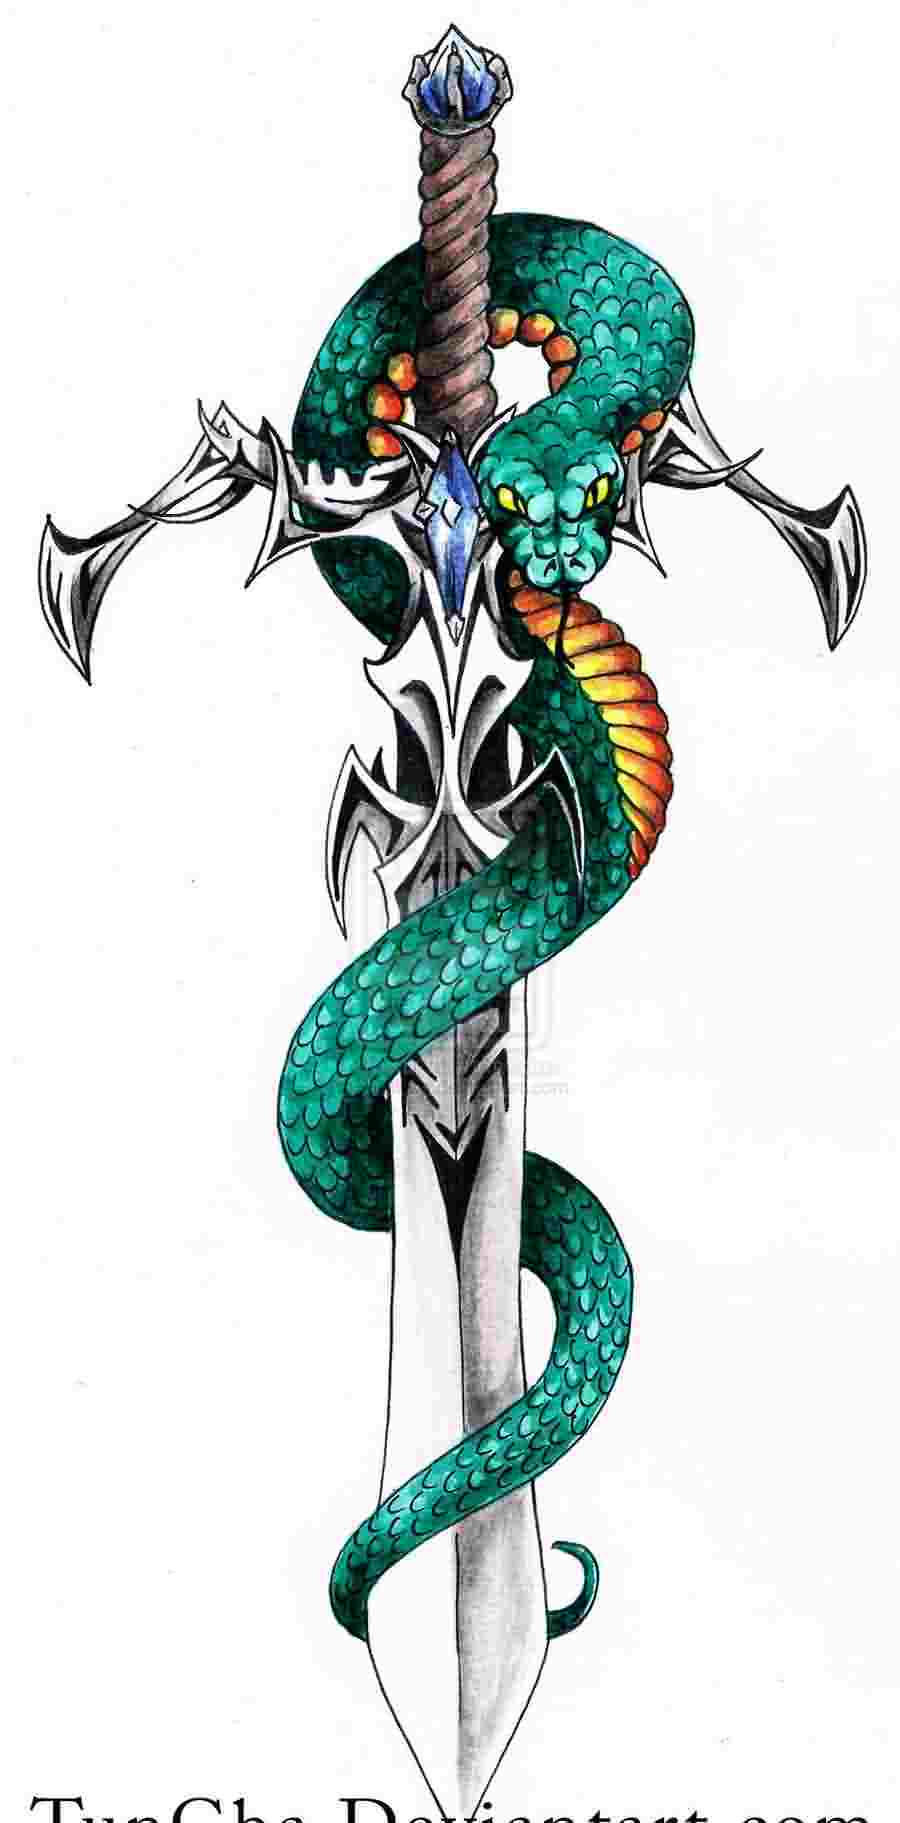 The Snake Sword Tattoo Design